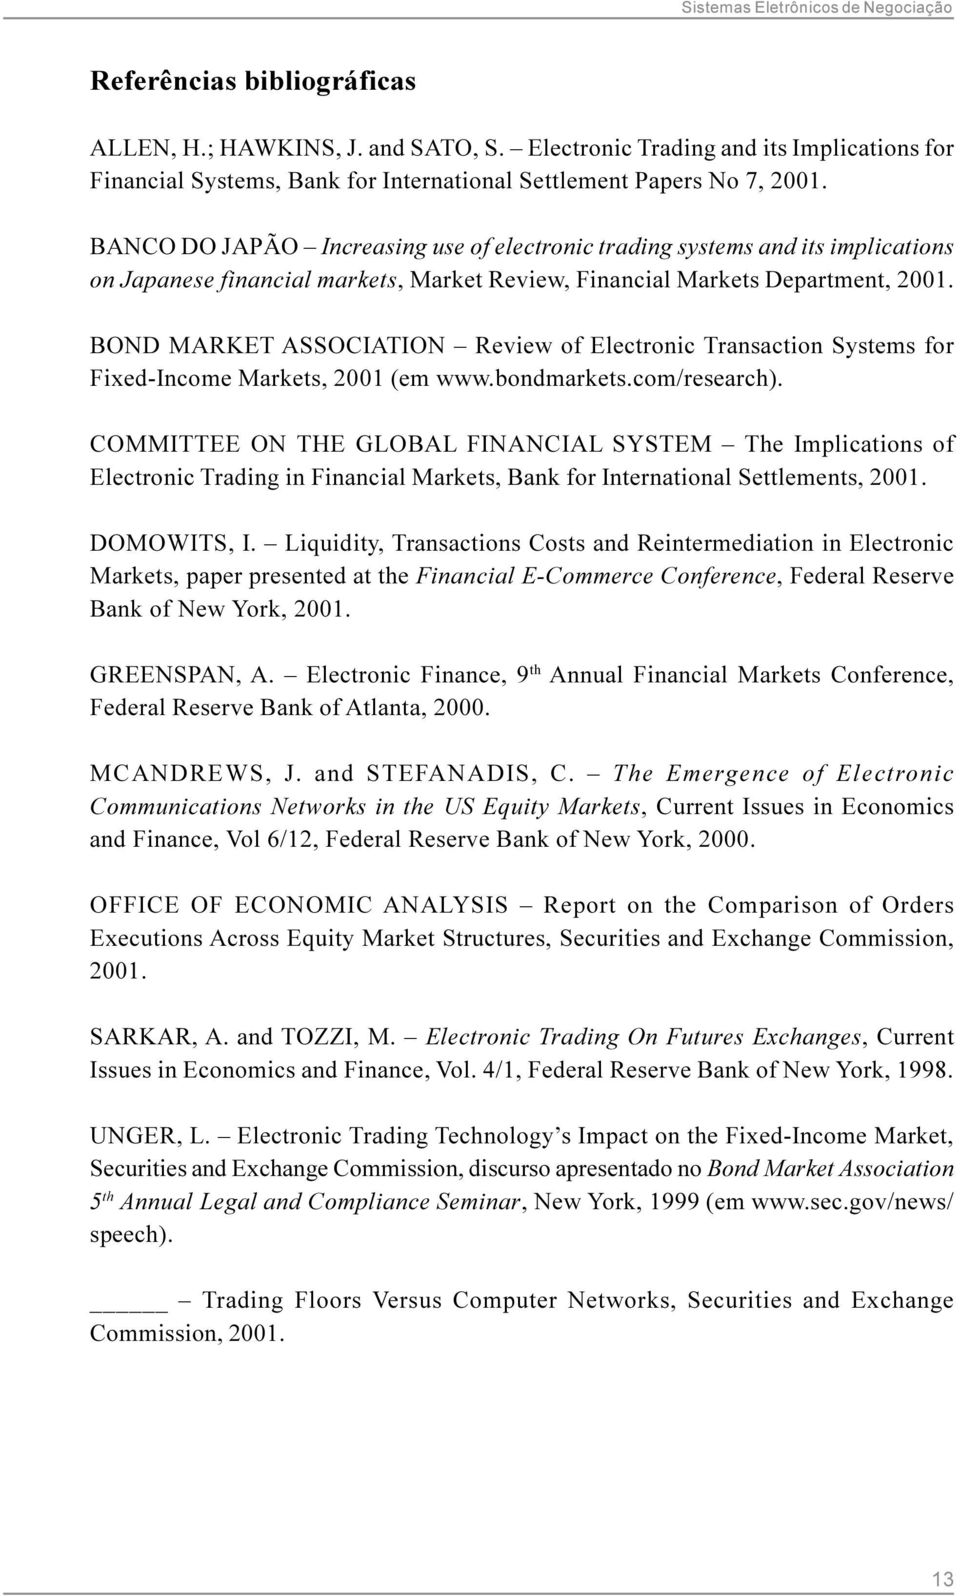 BOND MARKET ASSOCIATION Review of Electronic Transaction Systems for Fixed-Income Markets, 2001 (em www.bondmarkets.com/research).